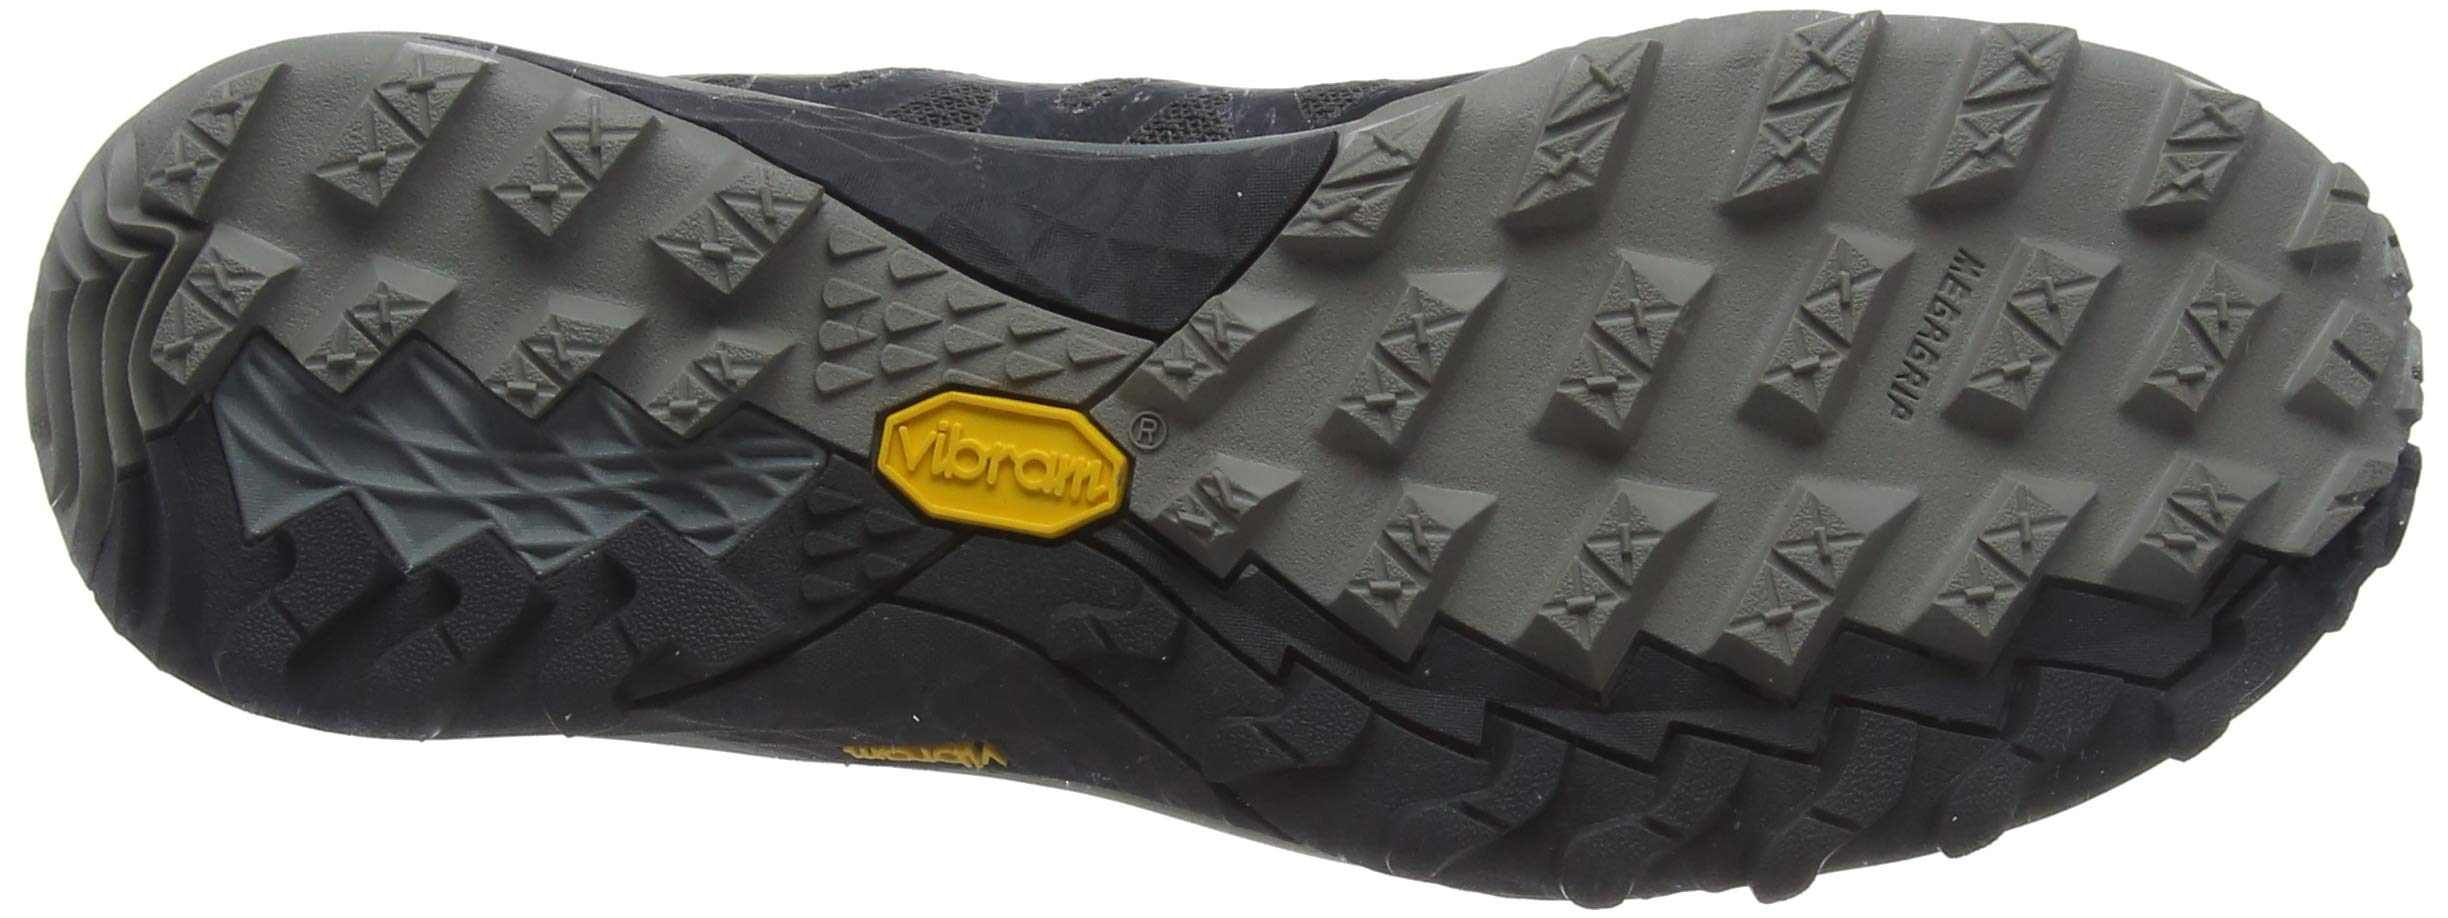 Merrell Women's Siren 3 Gore-tex Low Rise Hiking Boots 3